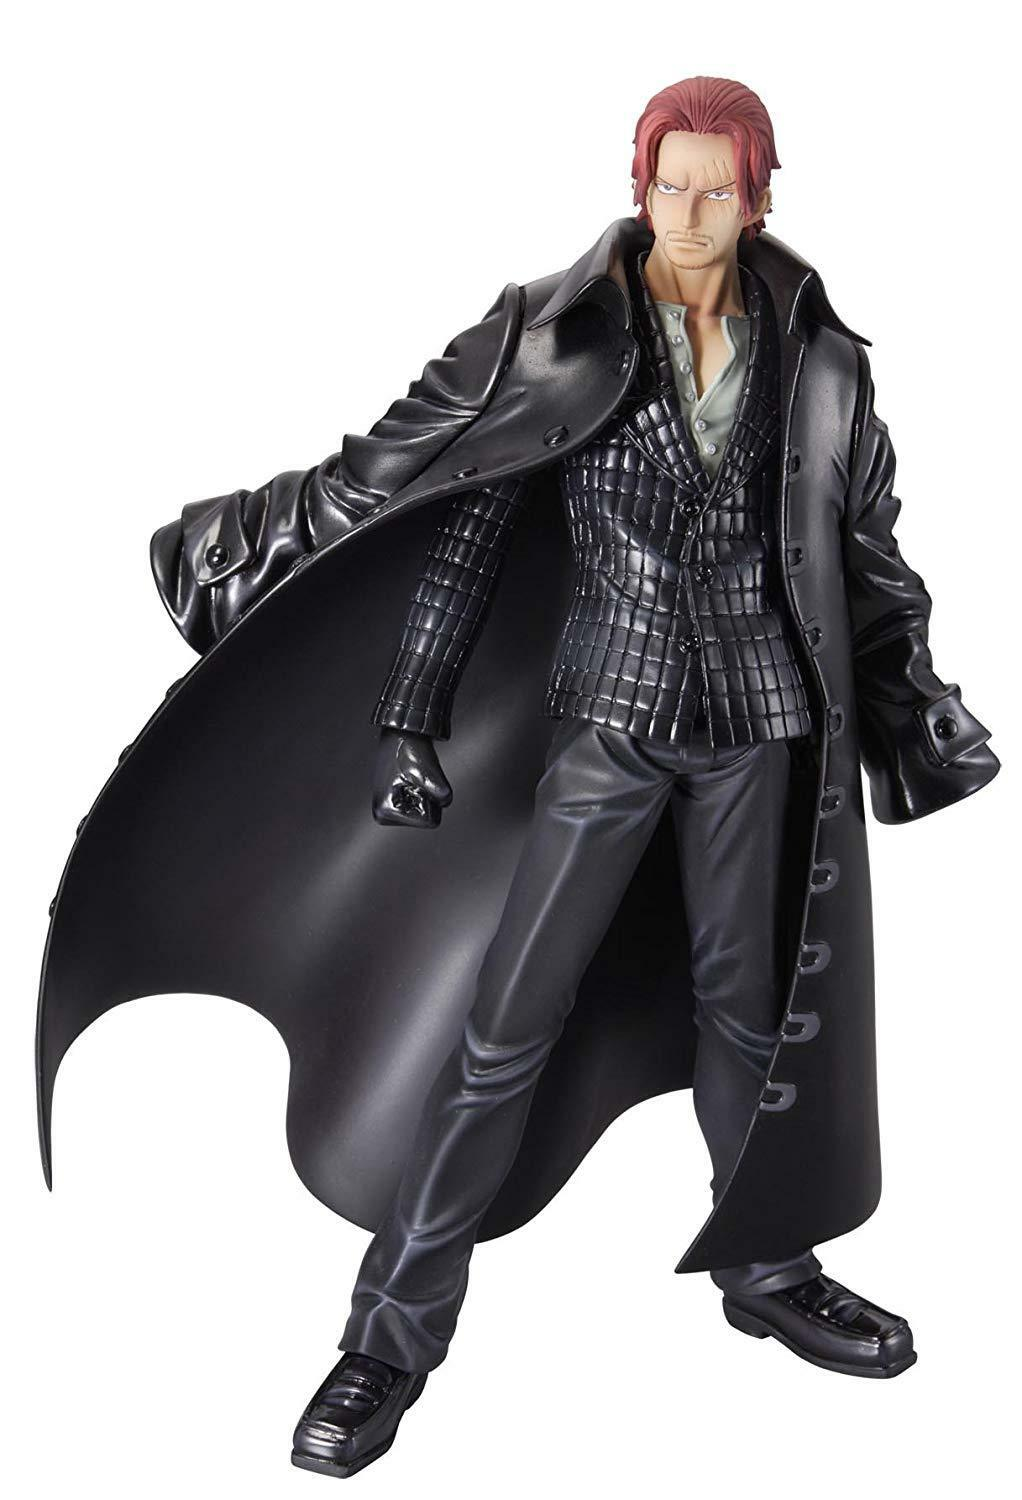 ONE PIECE P.O.P. - Shanks il Rosso - Figure Megahouse POP Strong Edition